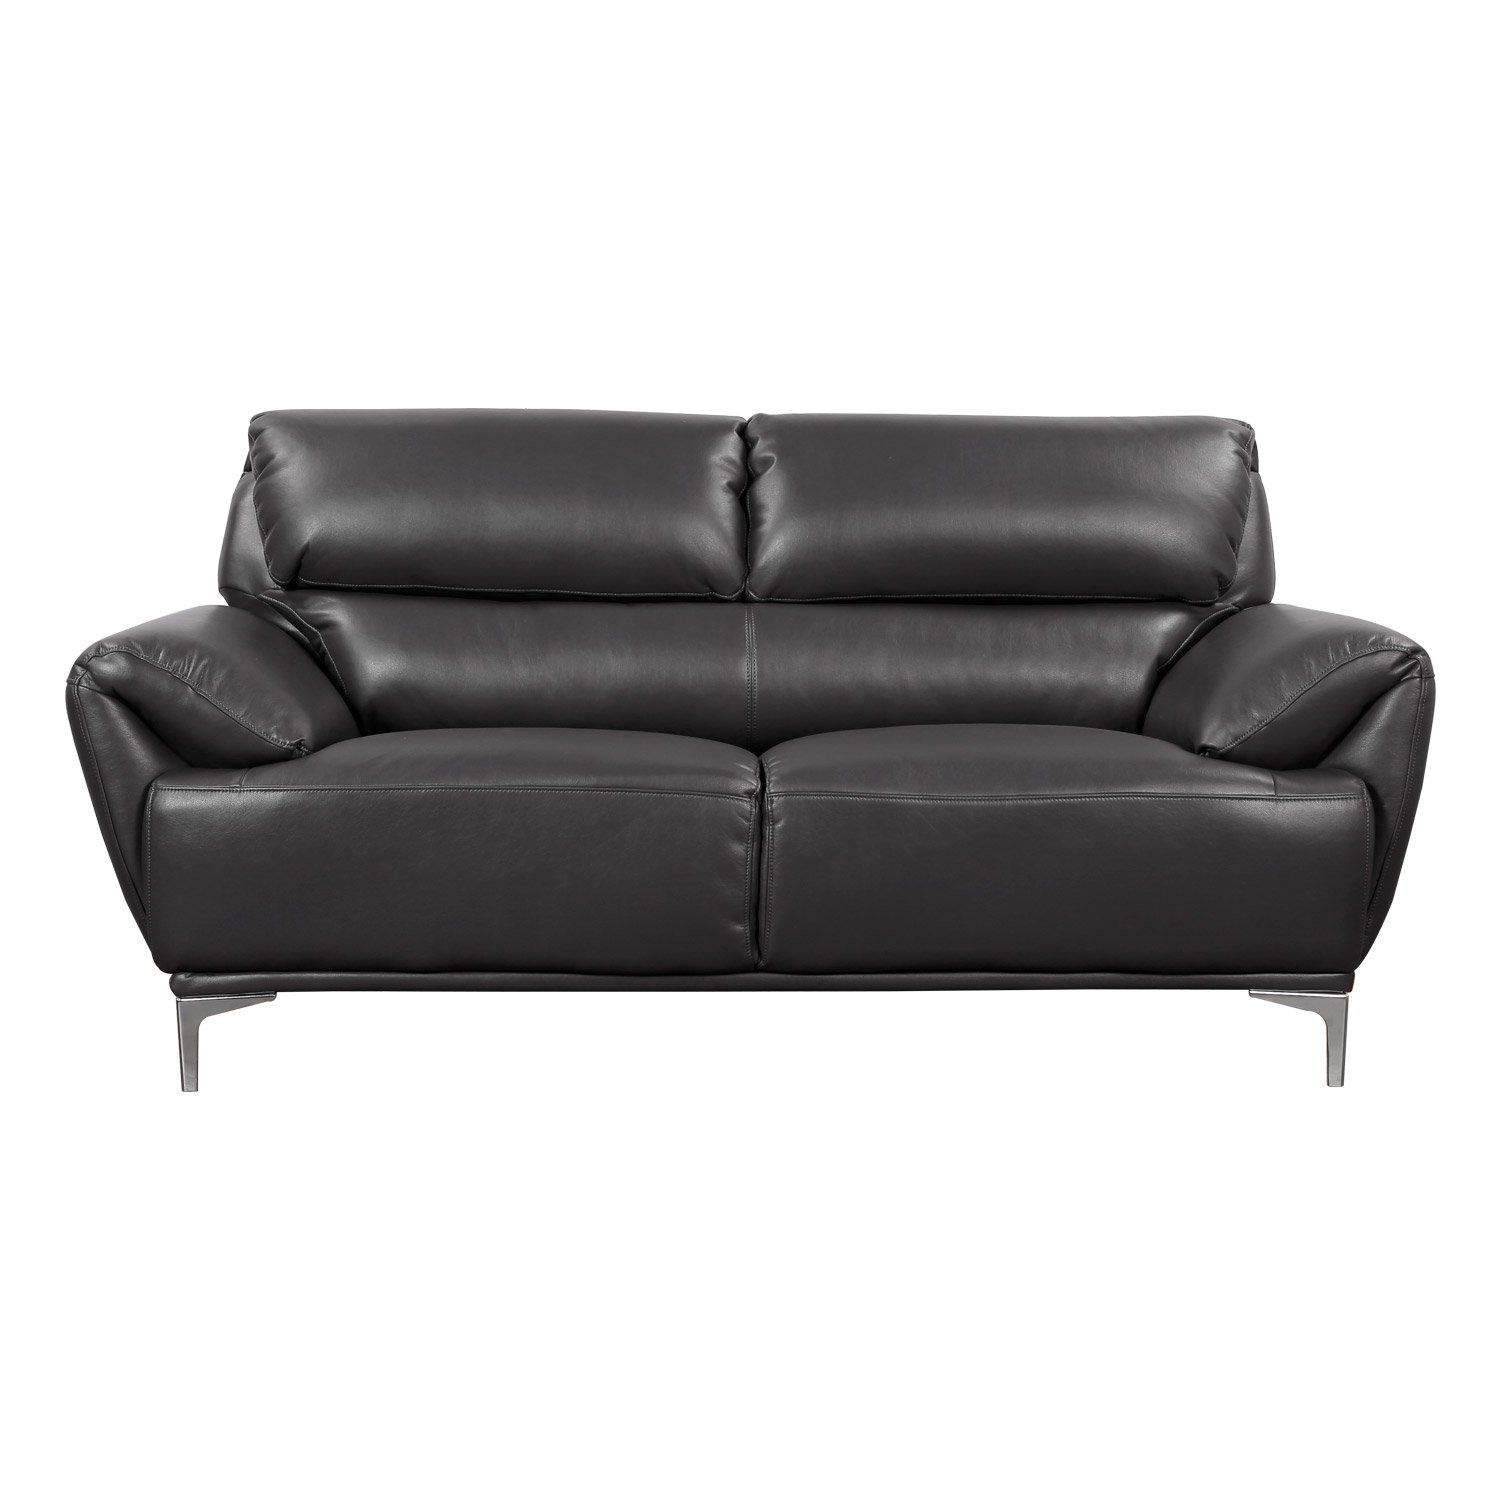 Drago collection loveseat gray products